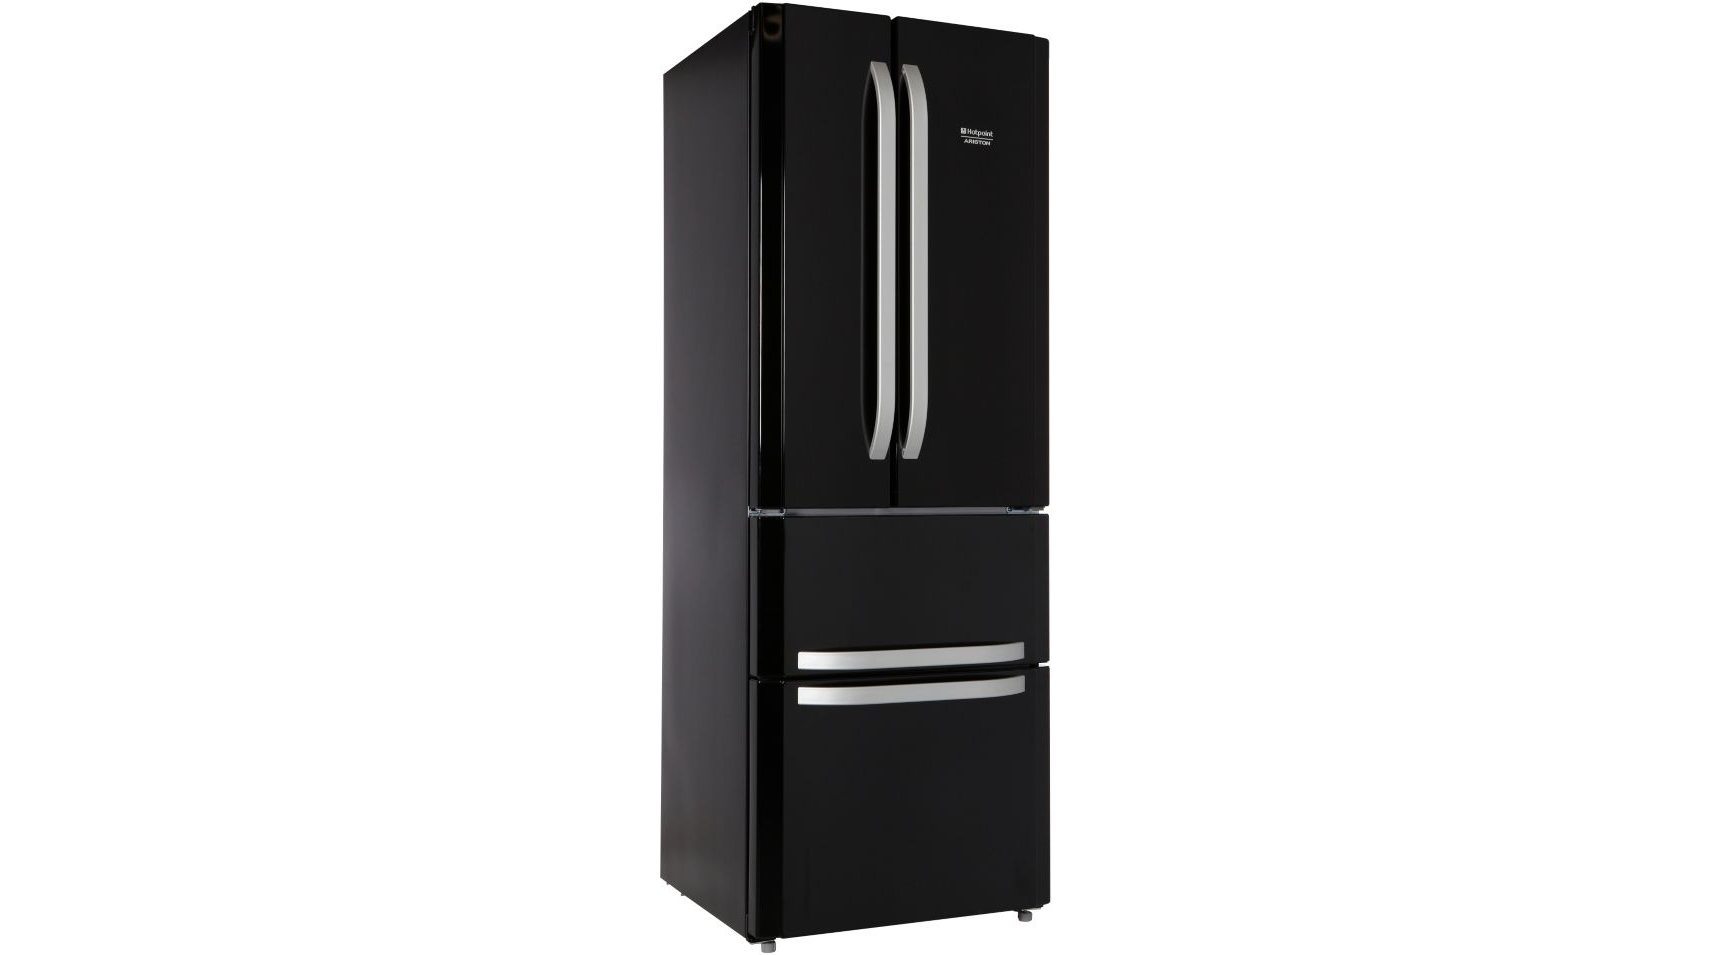 hotpoint r frig rateur deux portes e4d aa b c noir achat r frig rateur a. Black Bedroom Furniture Sets. Home Design Ideas